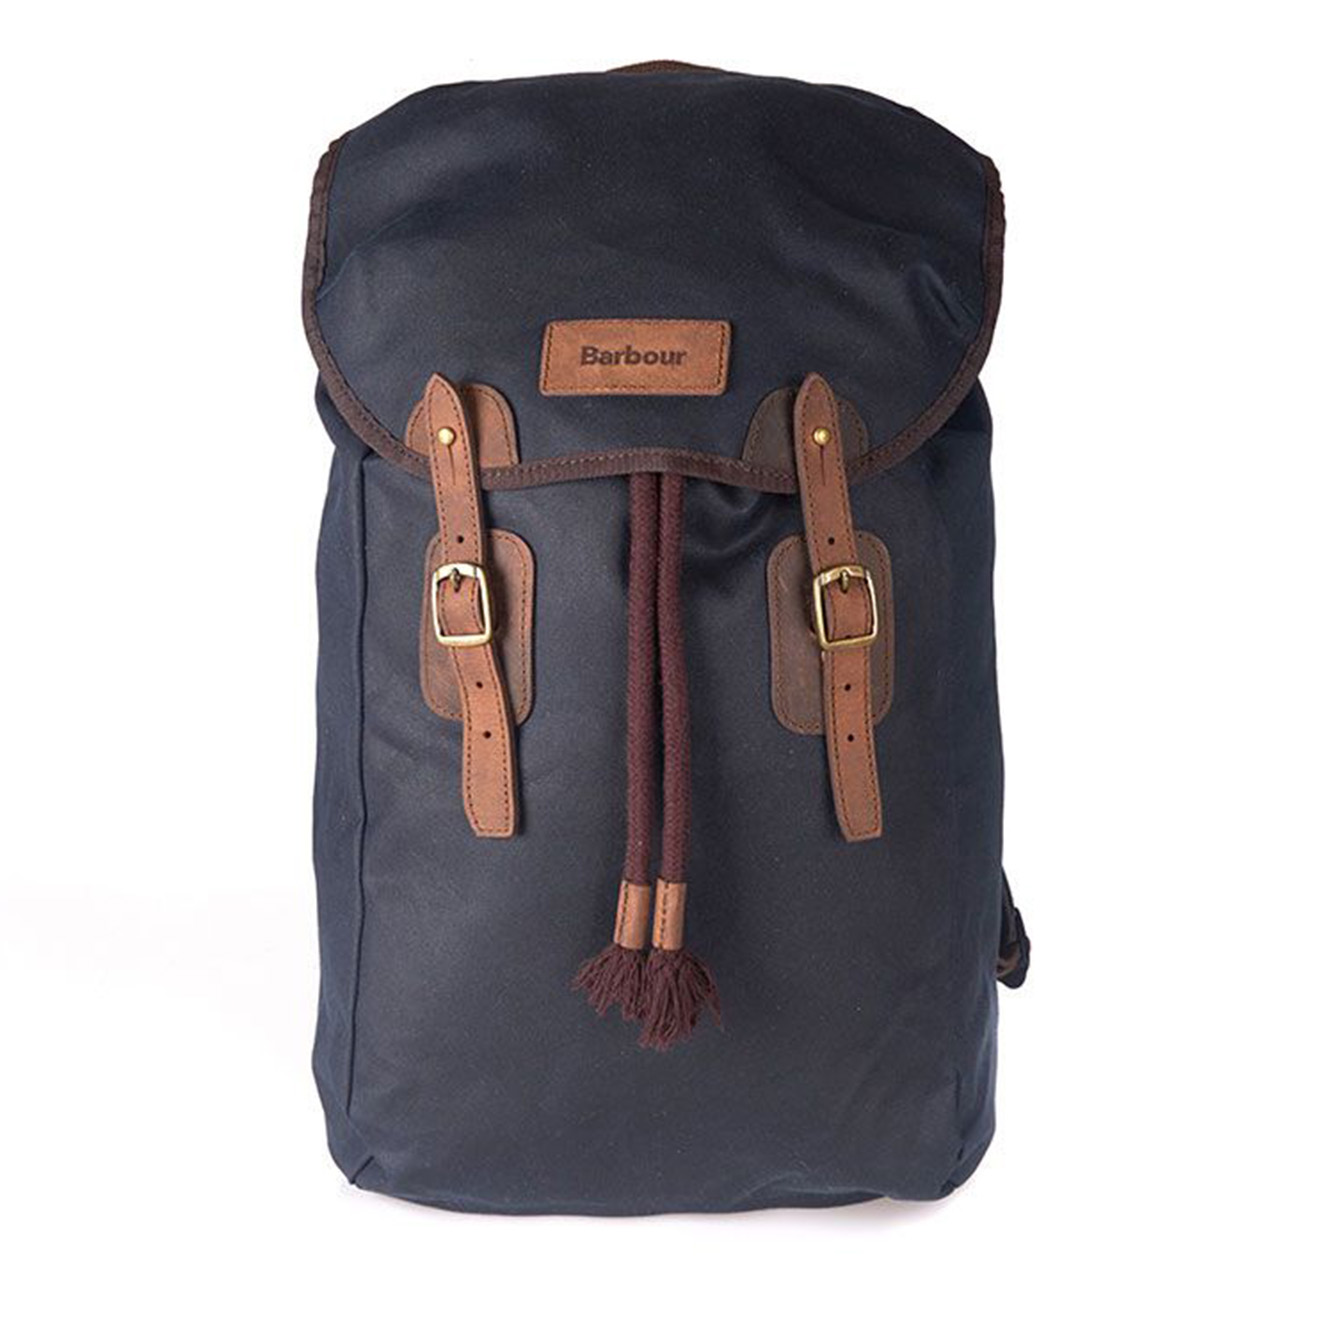 Barbour Wax Leather Backpack Navy The Sporting Lodge